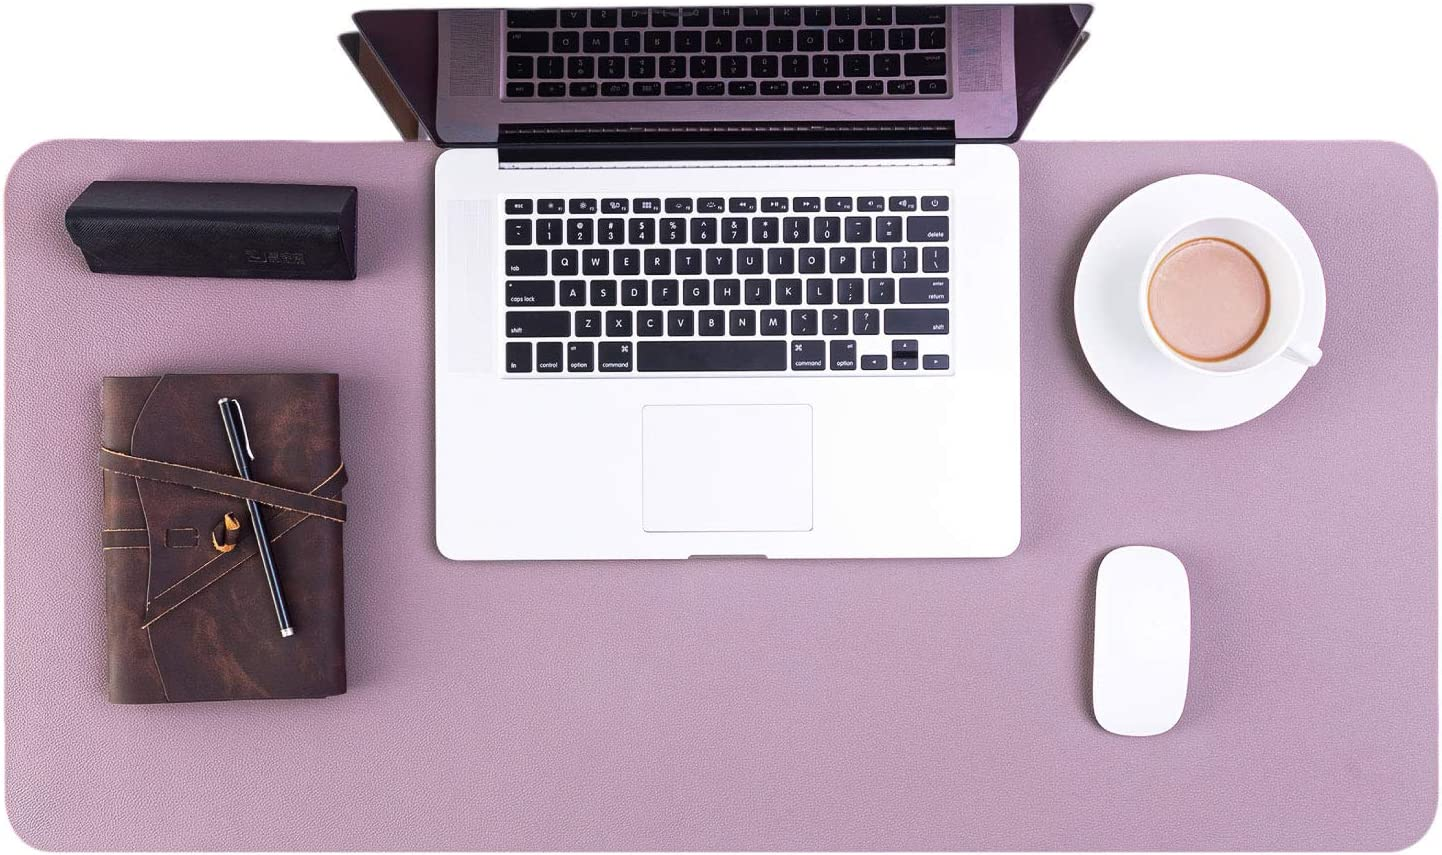 Bedsure Genuine Leather Desk Pad, Office Desk Mat Blotter on top of desks, Large Computer Desk Mat, Waterproof Lavender Mouse Desk Pad Protector for Office and Home (Purple, 15.7x31.5 inches)